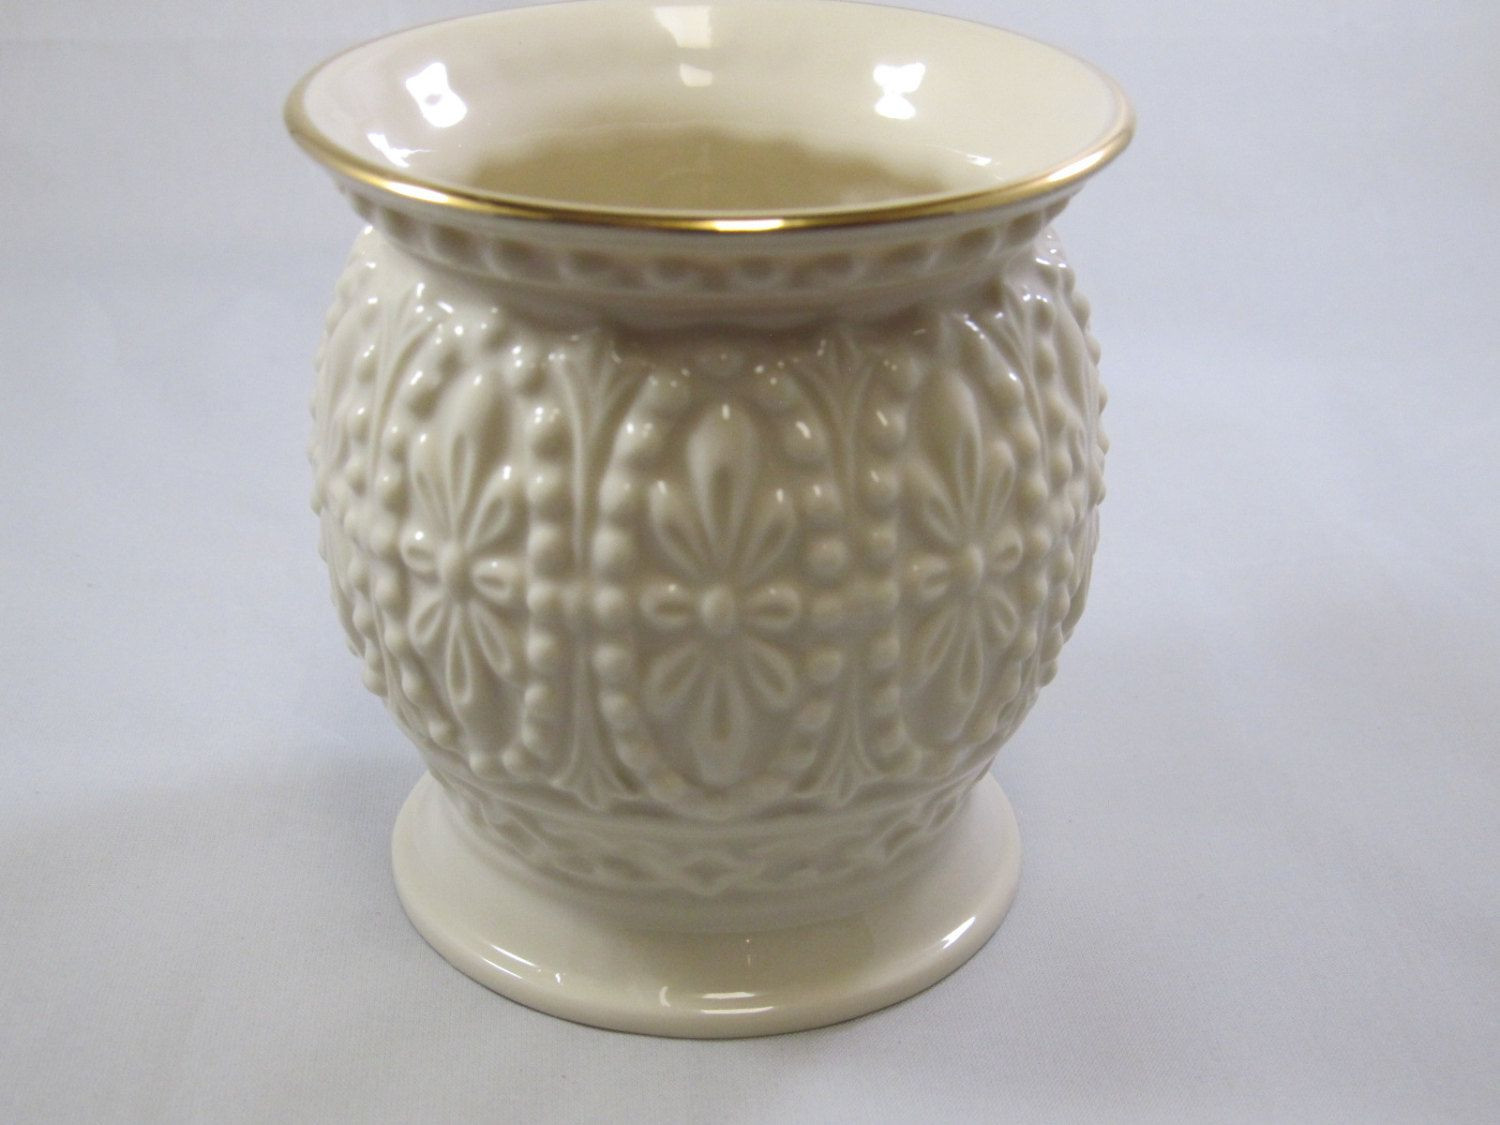 vintage lenox vases of lenox ivory porcelain vase 24k gold trim bud vase fine china intended for lenox ivory porcelain vase 24k gold trim bud vase fine china small bud vase china vase bumpy details